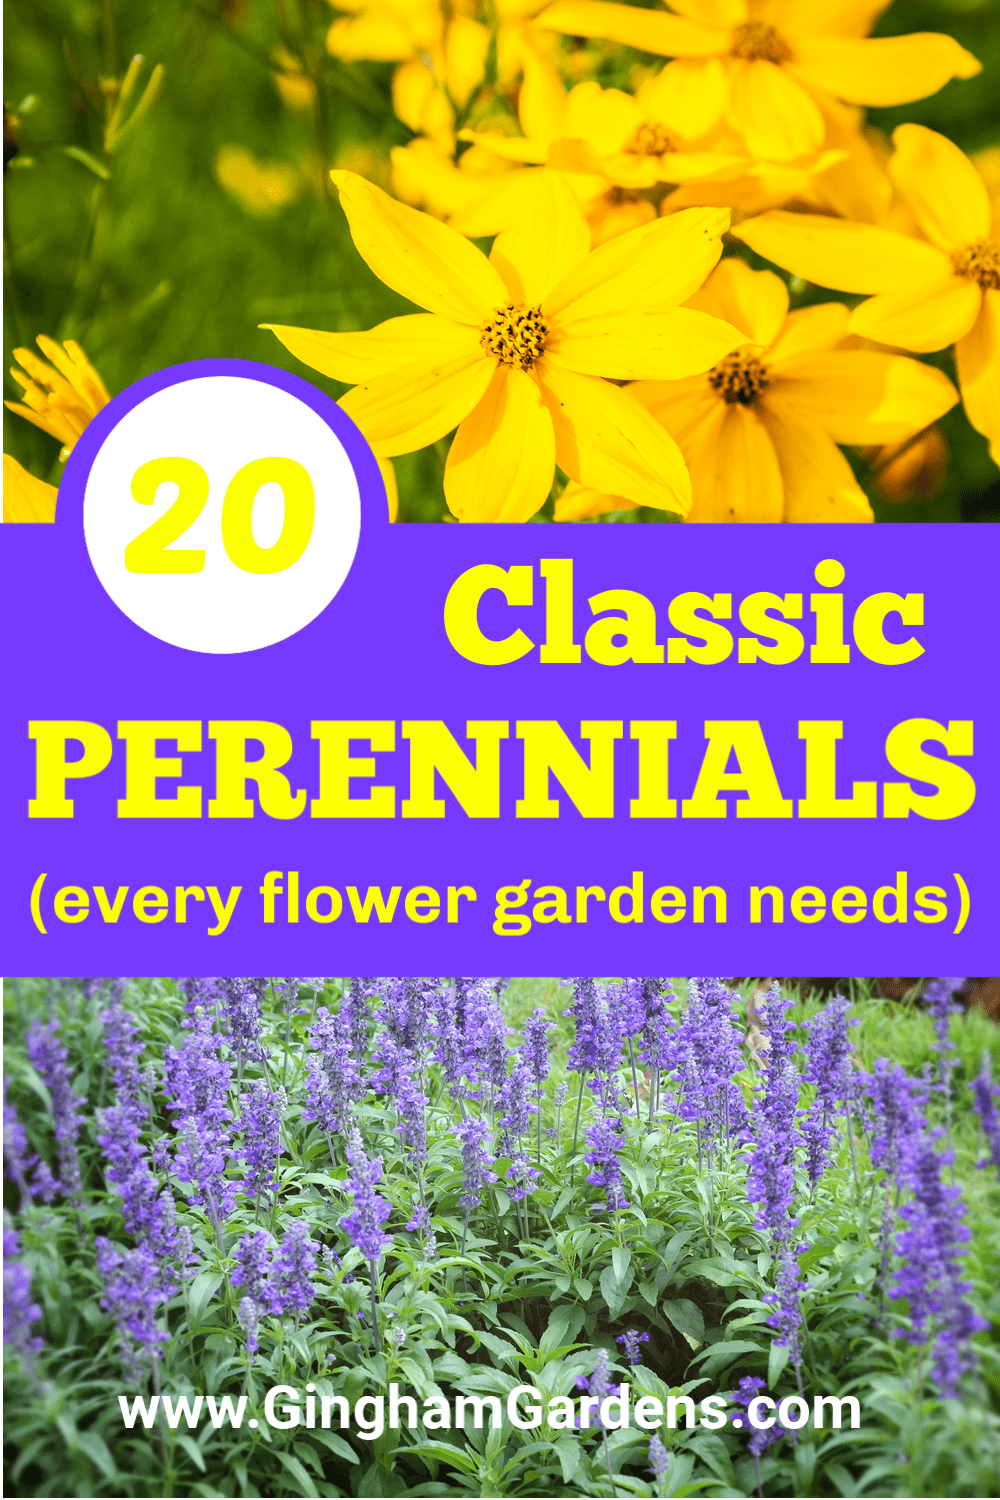 Images of Flowers with Text Overlay - 20 Classic Perennials (every flower garden needs)